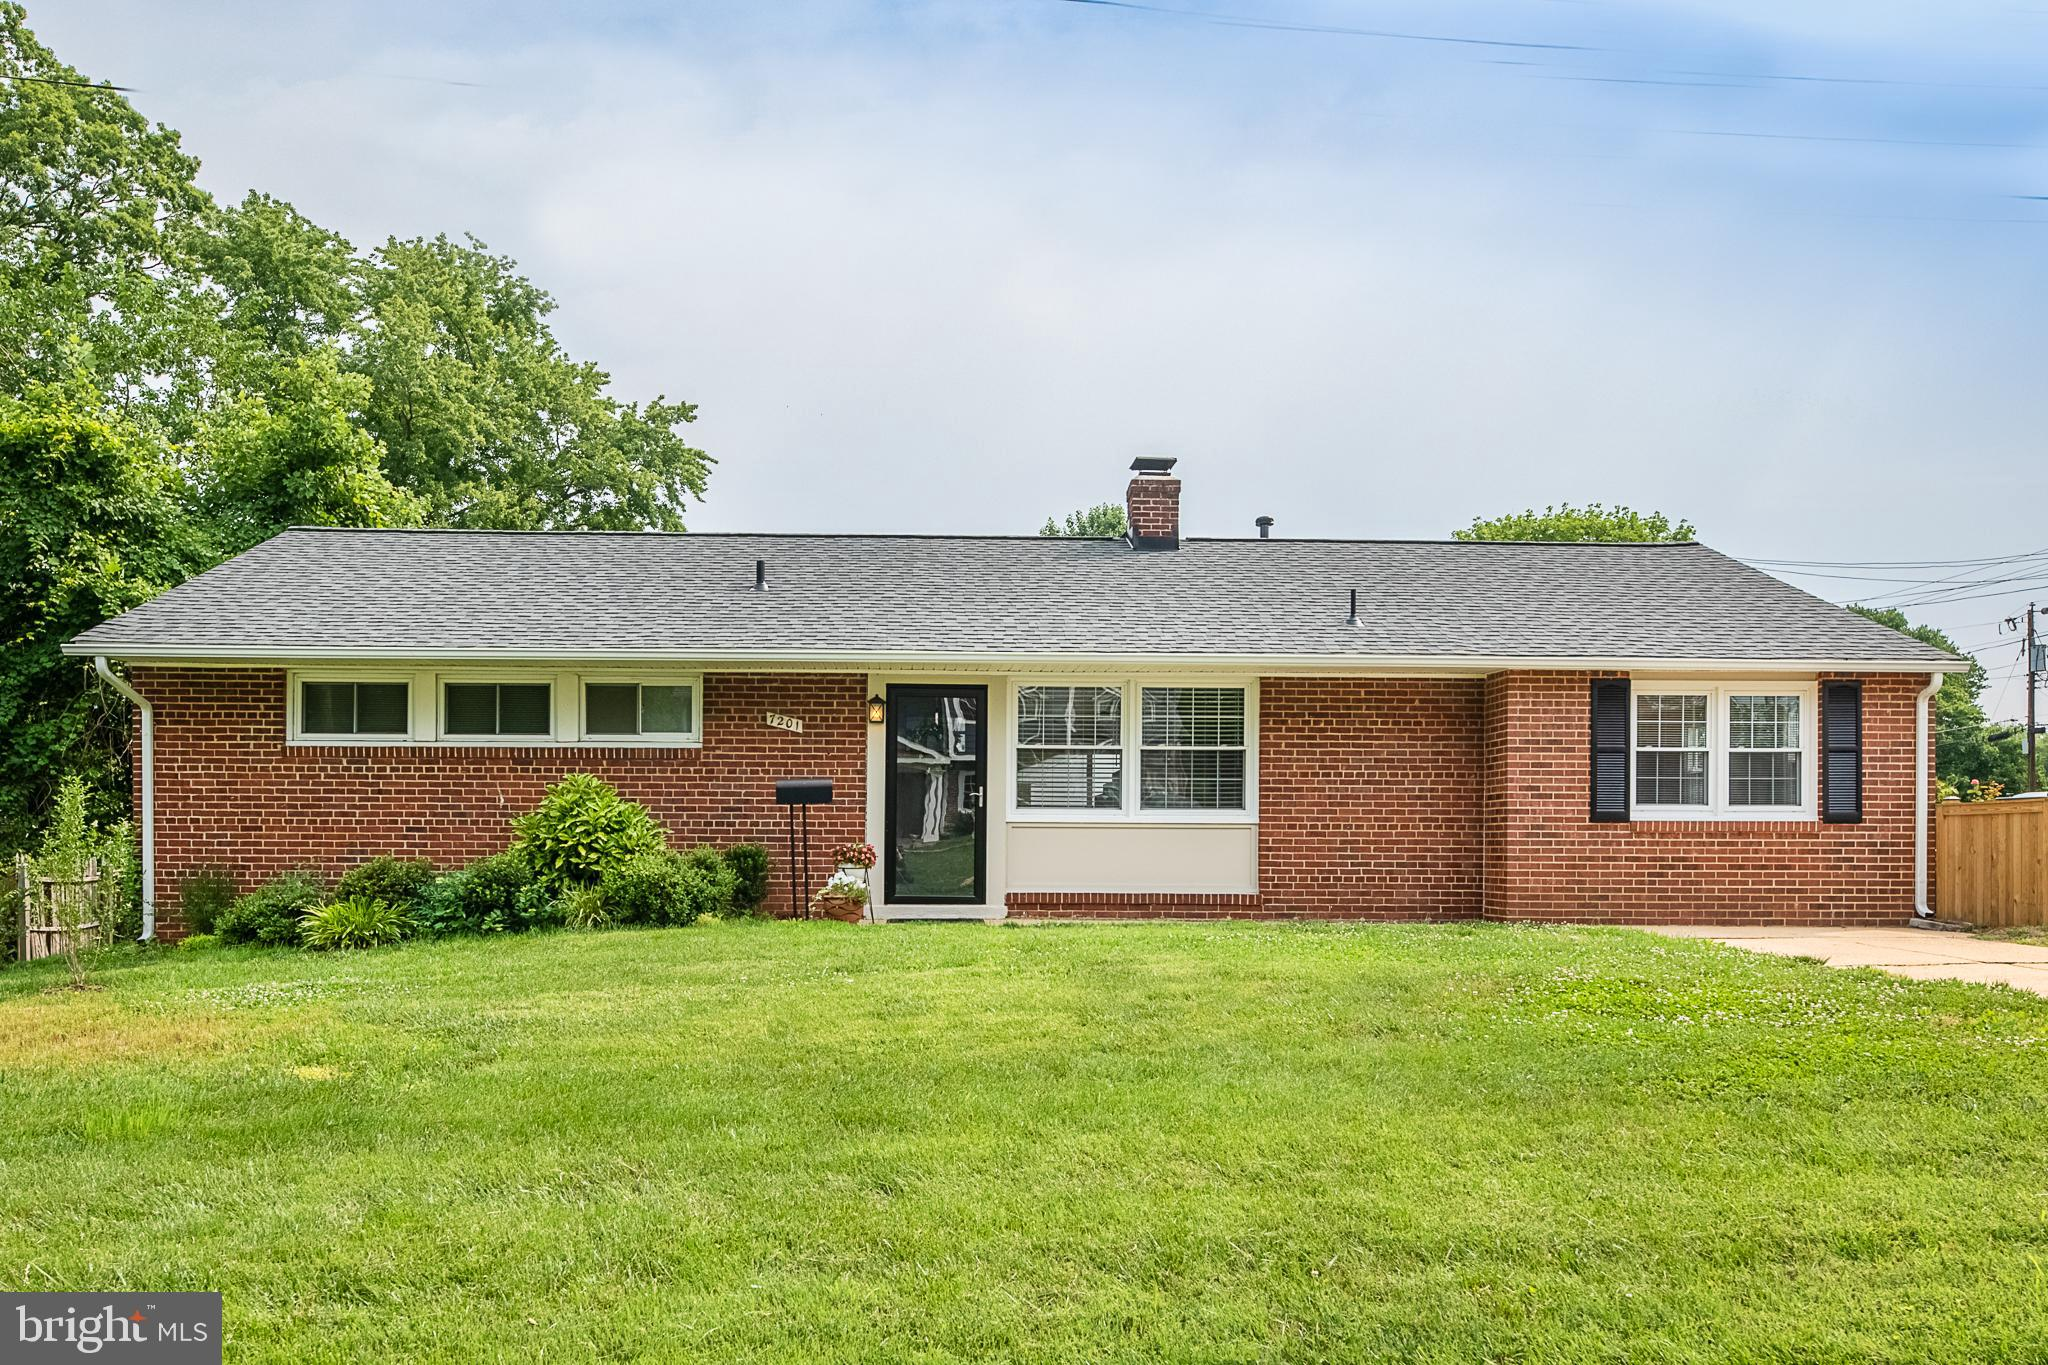 No HOA! Corner lot with a private driveway nestled in Springfield; brand new roof and gutters. 2 parks nearby! Brookfield Park and Lake Accotink Park feature activities such as kayak rentals, trails, mini golf, and so much more! Beautiful and modern kitchen features brand new stainless steel appliances, granite countertops, and a custom backsplash. Meal prepping just got easier !Sunny dining room off kitchen with designer lighting. Eye-catching wood-burning fireplace with white brick surrounding in the bright living room; living room has built-in shelving and leads to incredible, spacious backyard with brand new fence, large patio, and landscaping. Open layout wonderful for hosting. Enter the relaxing master bedroom that features a white brick statement wall and you~ll find a huge walk-in closet and luxurious attached bath with a walk-in shower complete with stunning tile. Laundry room is off the master bath and boasts a sink, backyard access, and a brand new stacked washer and dryer.